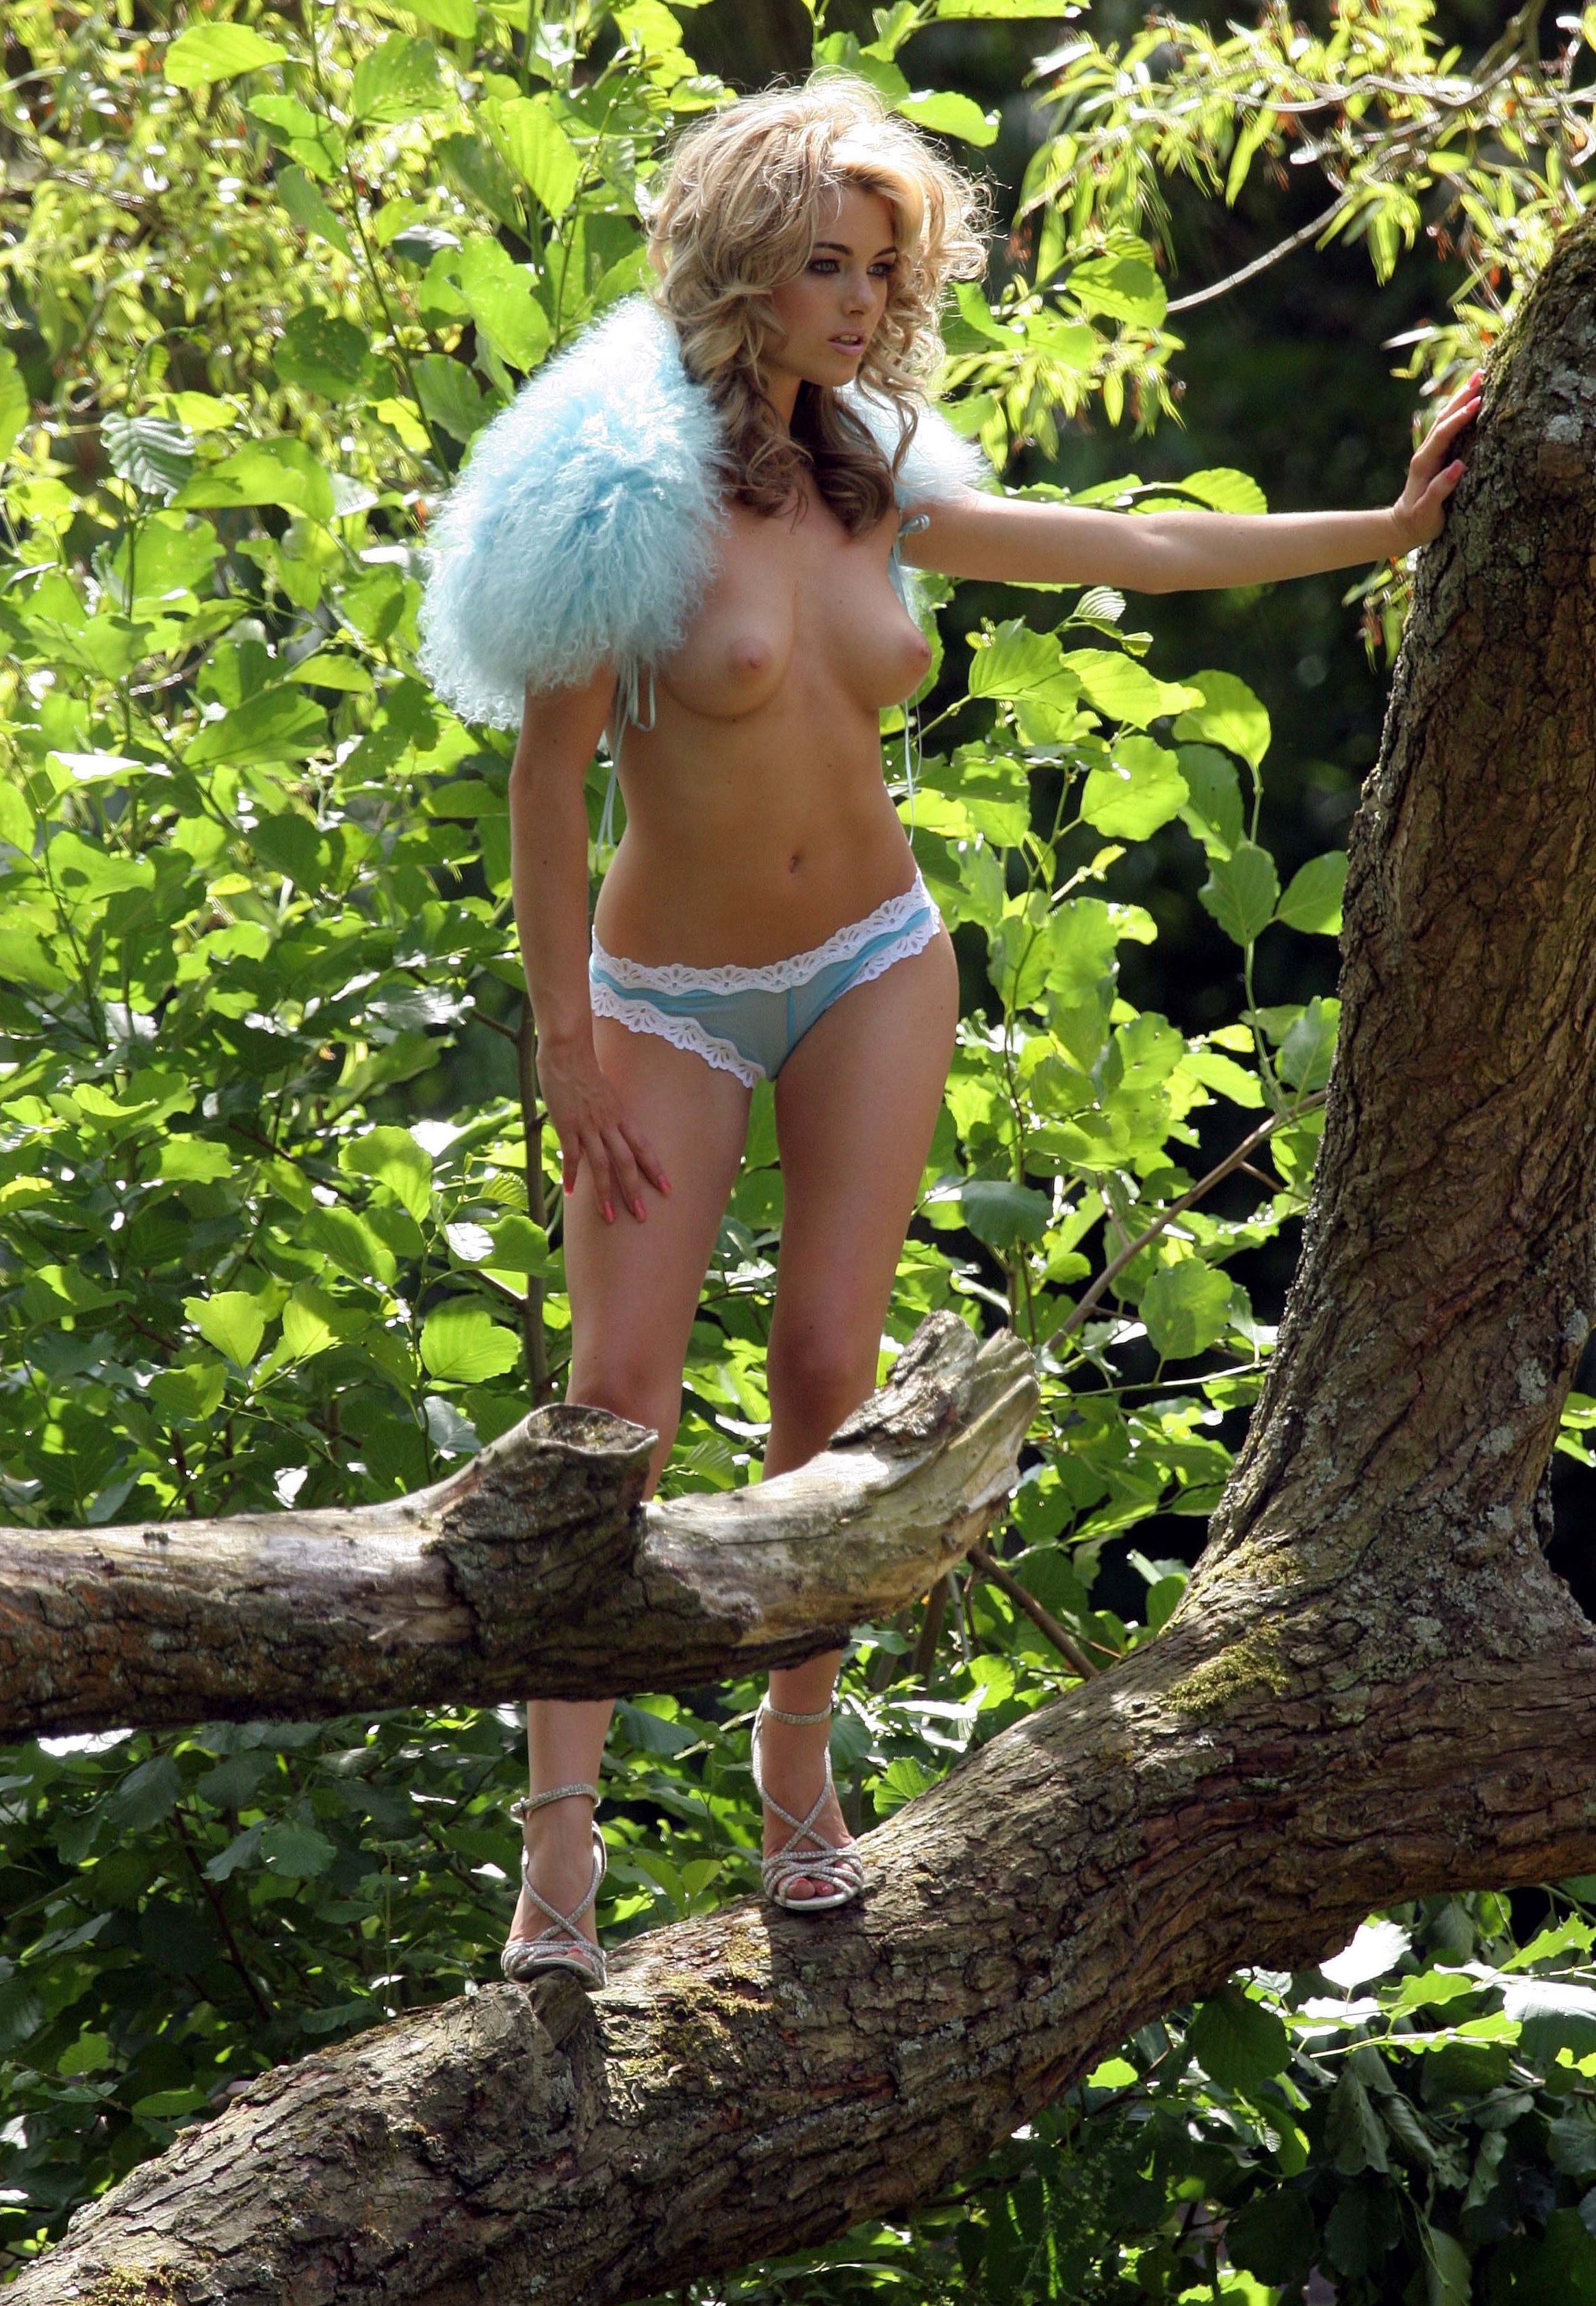 Katie Downes Topless 6 TheFappening.nu